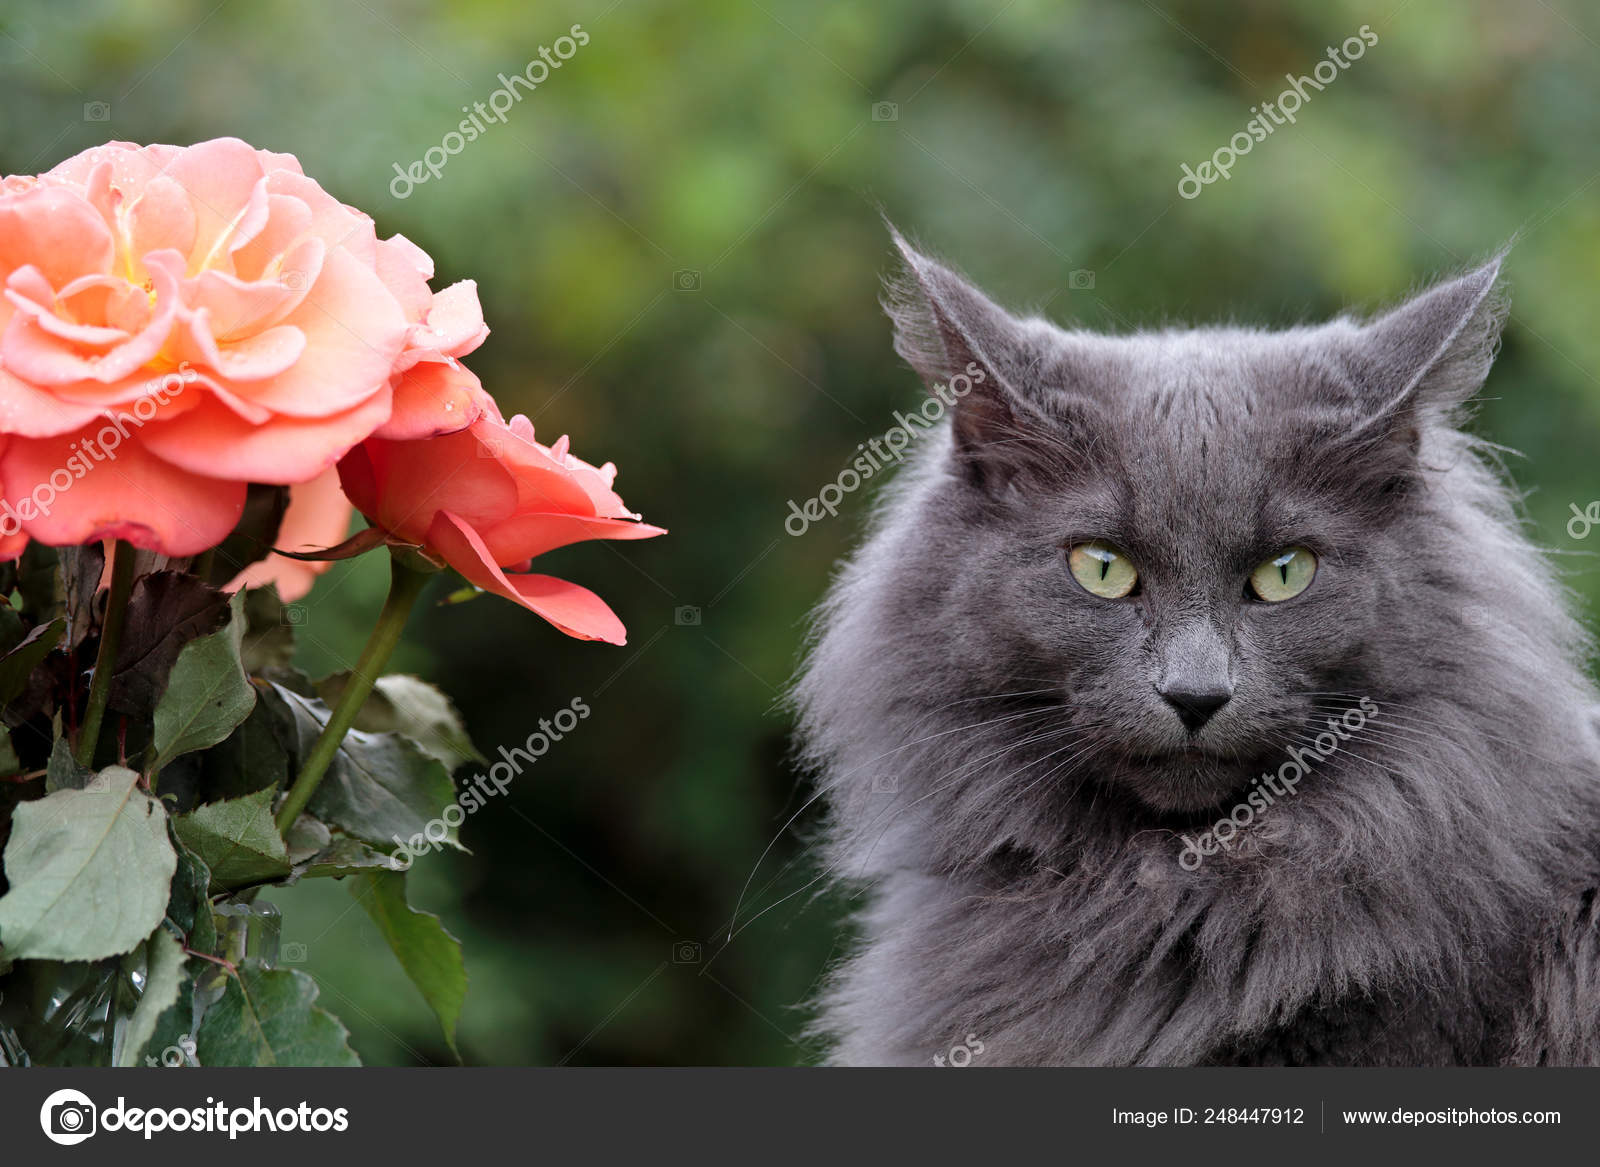 Blue Norwegian Forest Cat Female Very Strict Expression Beautiful Red Stock Photo C Puteli 248447912